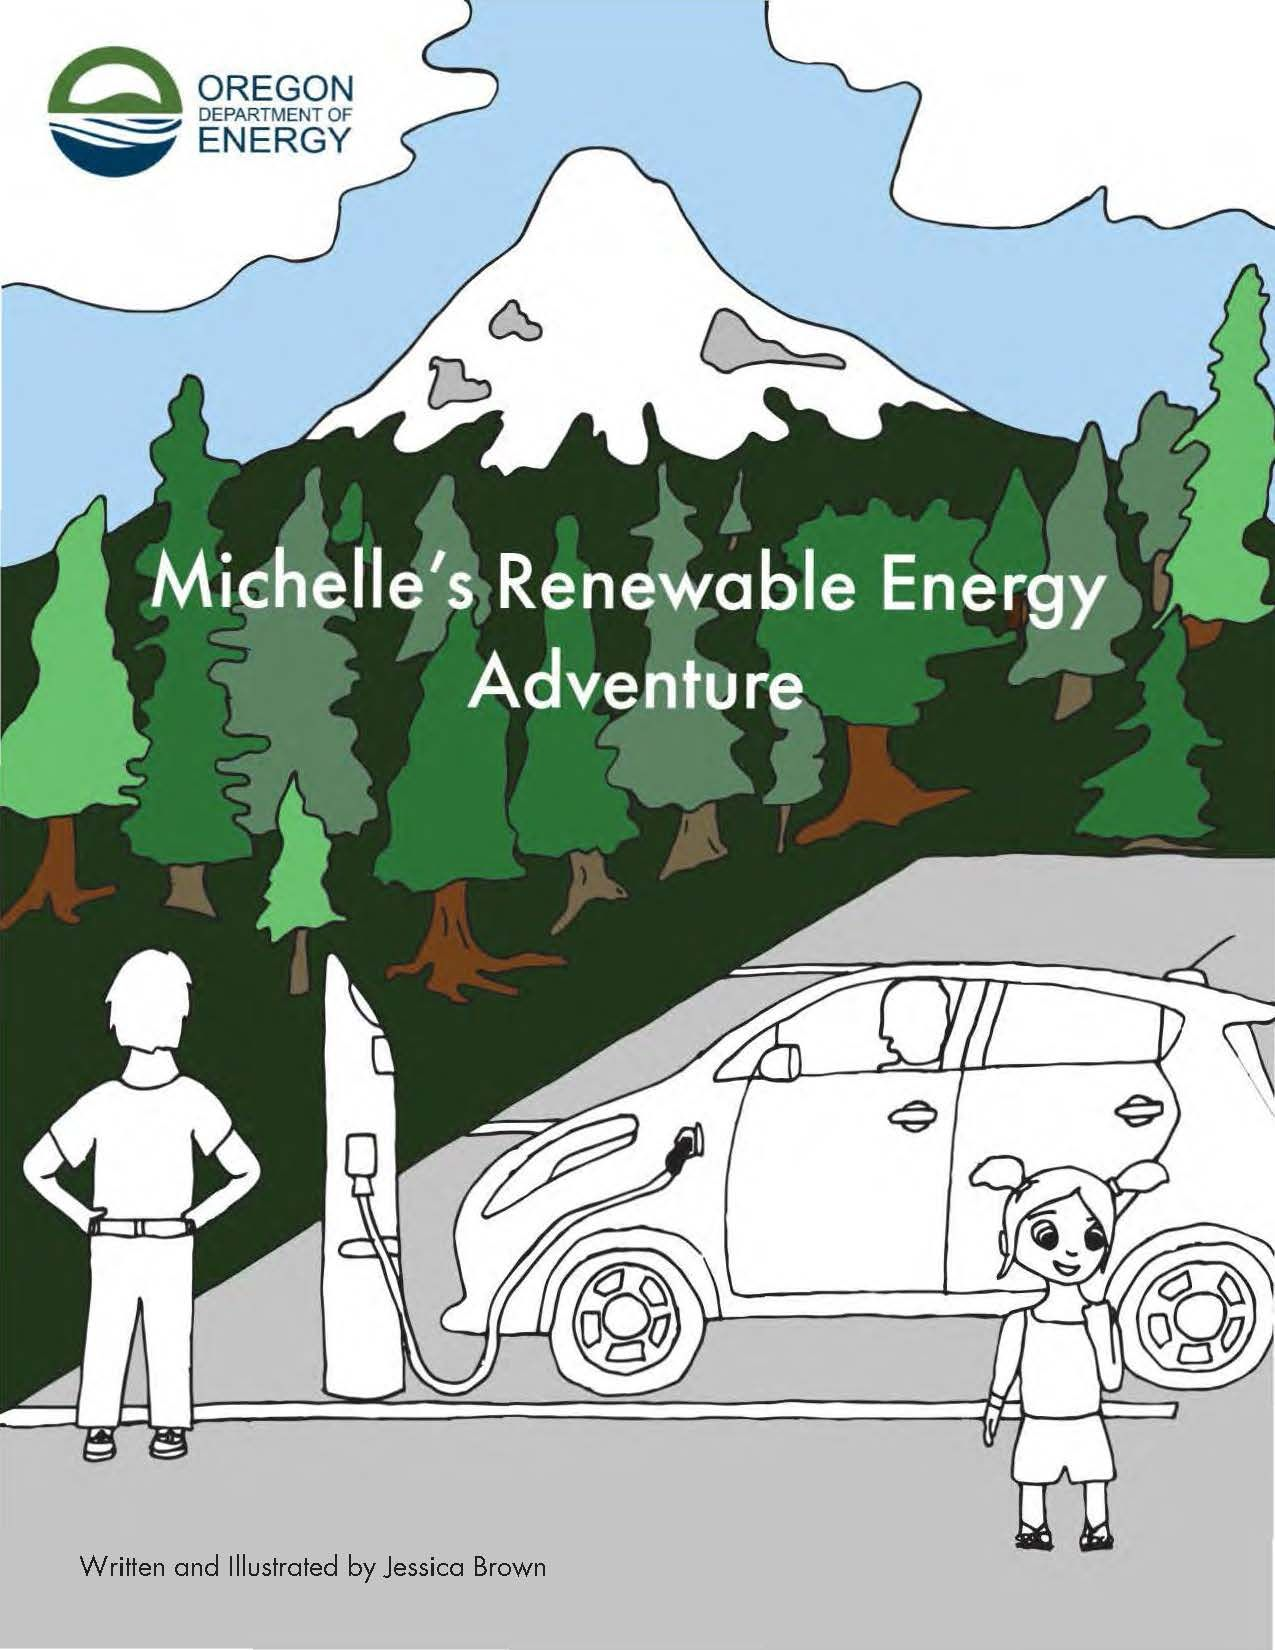 Michelle's renewable energy adventure : coloring & activity book, by the Oregon Department of Energy